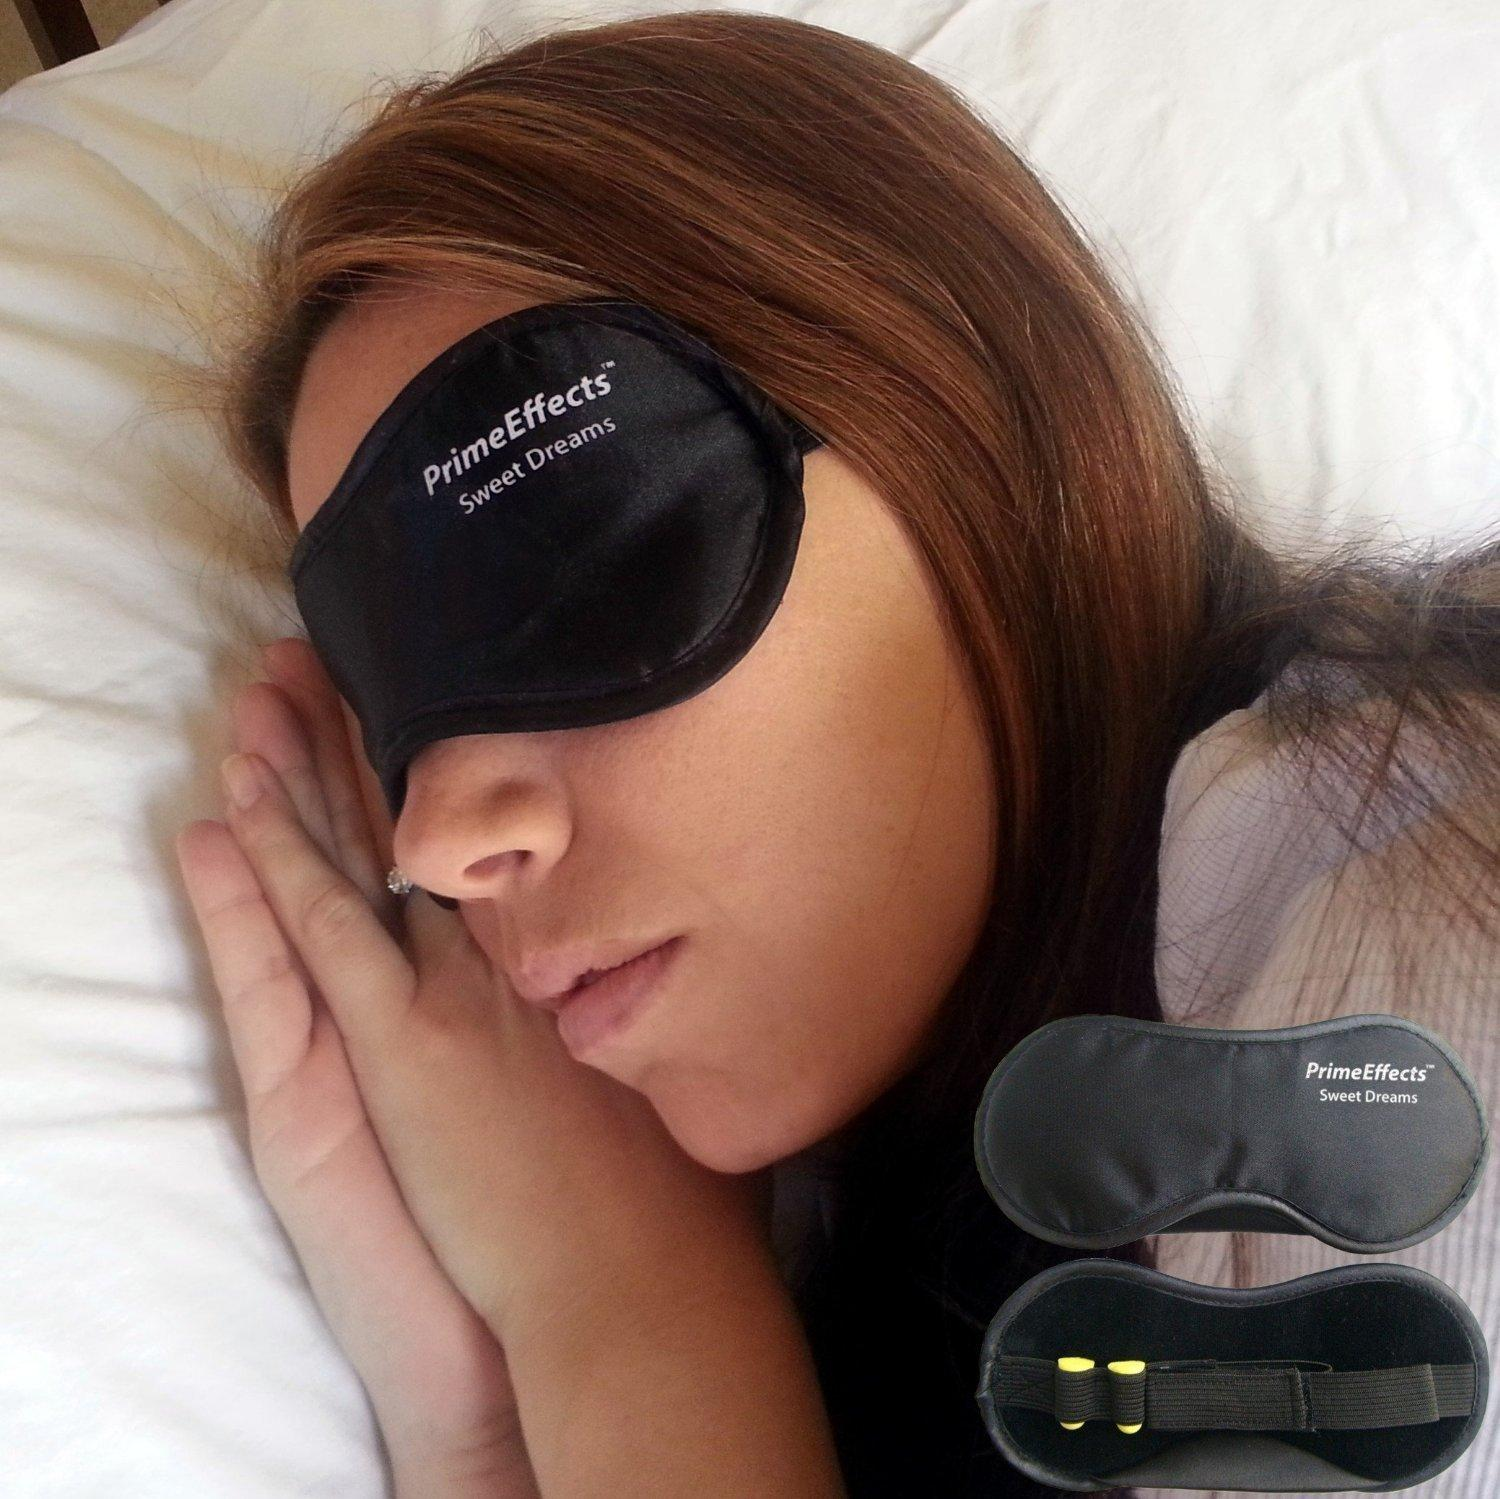 PrimeEffects Sweet Dreams Sleep Mask with Ear Plugs